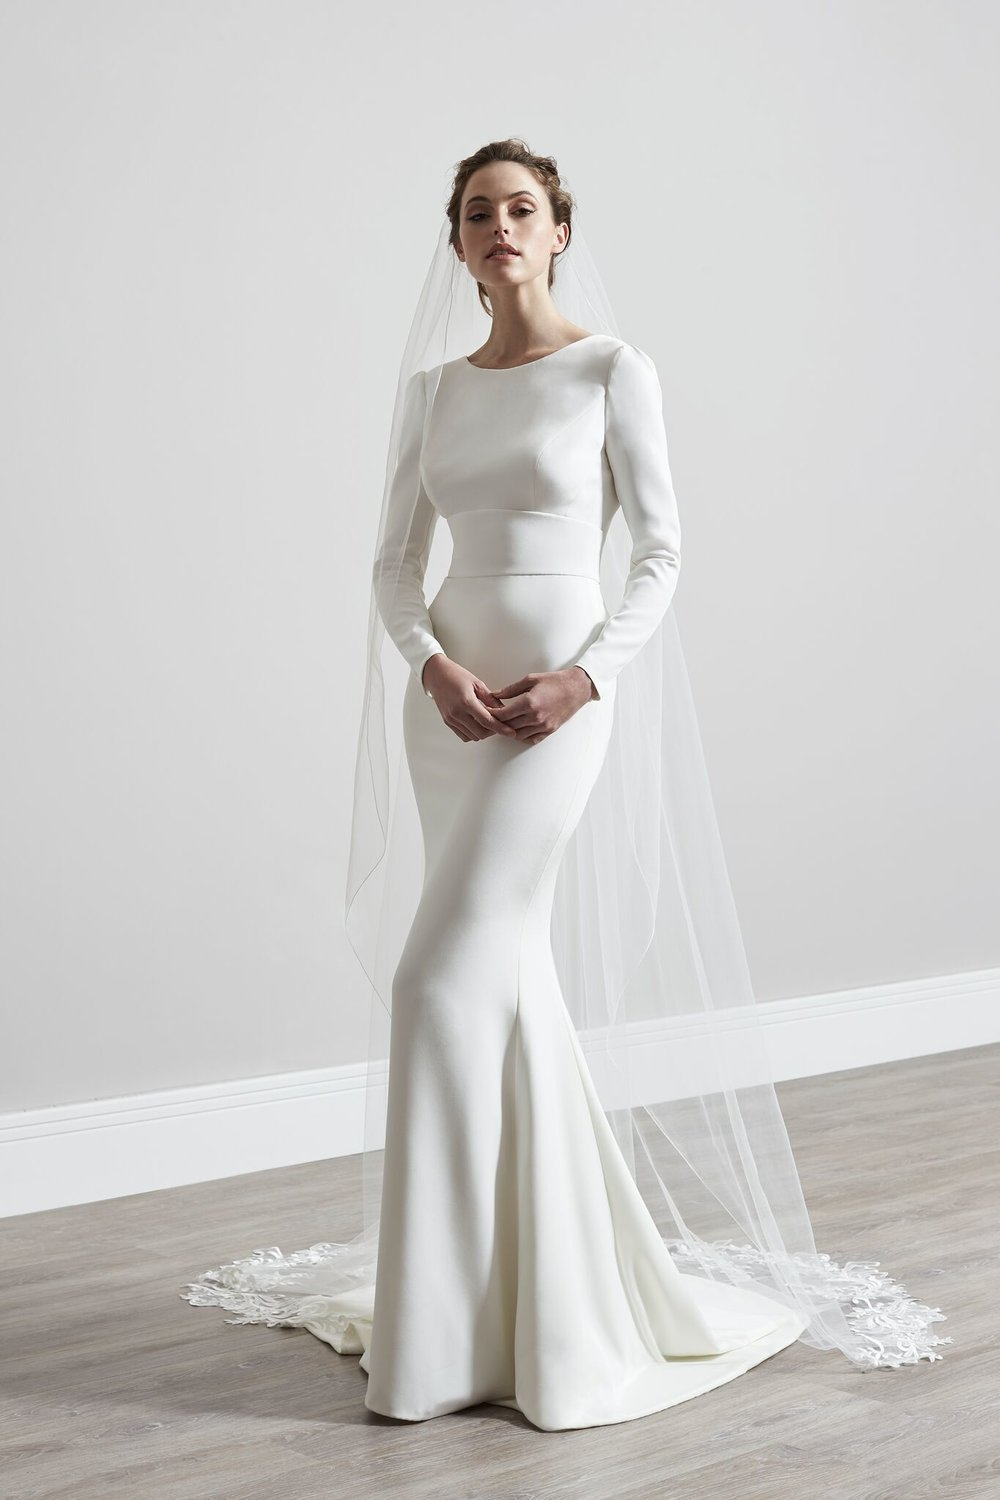 What are some of the key design elements? - Laser cut appliqués, understated embellishments, unique back details and plunging necklines. Silhouettes range from dramatic soft tulle ball gowns or playful tiered skirts to figure hugging fishtails, reflecting the romantic theme of the collection.